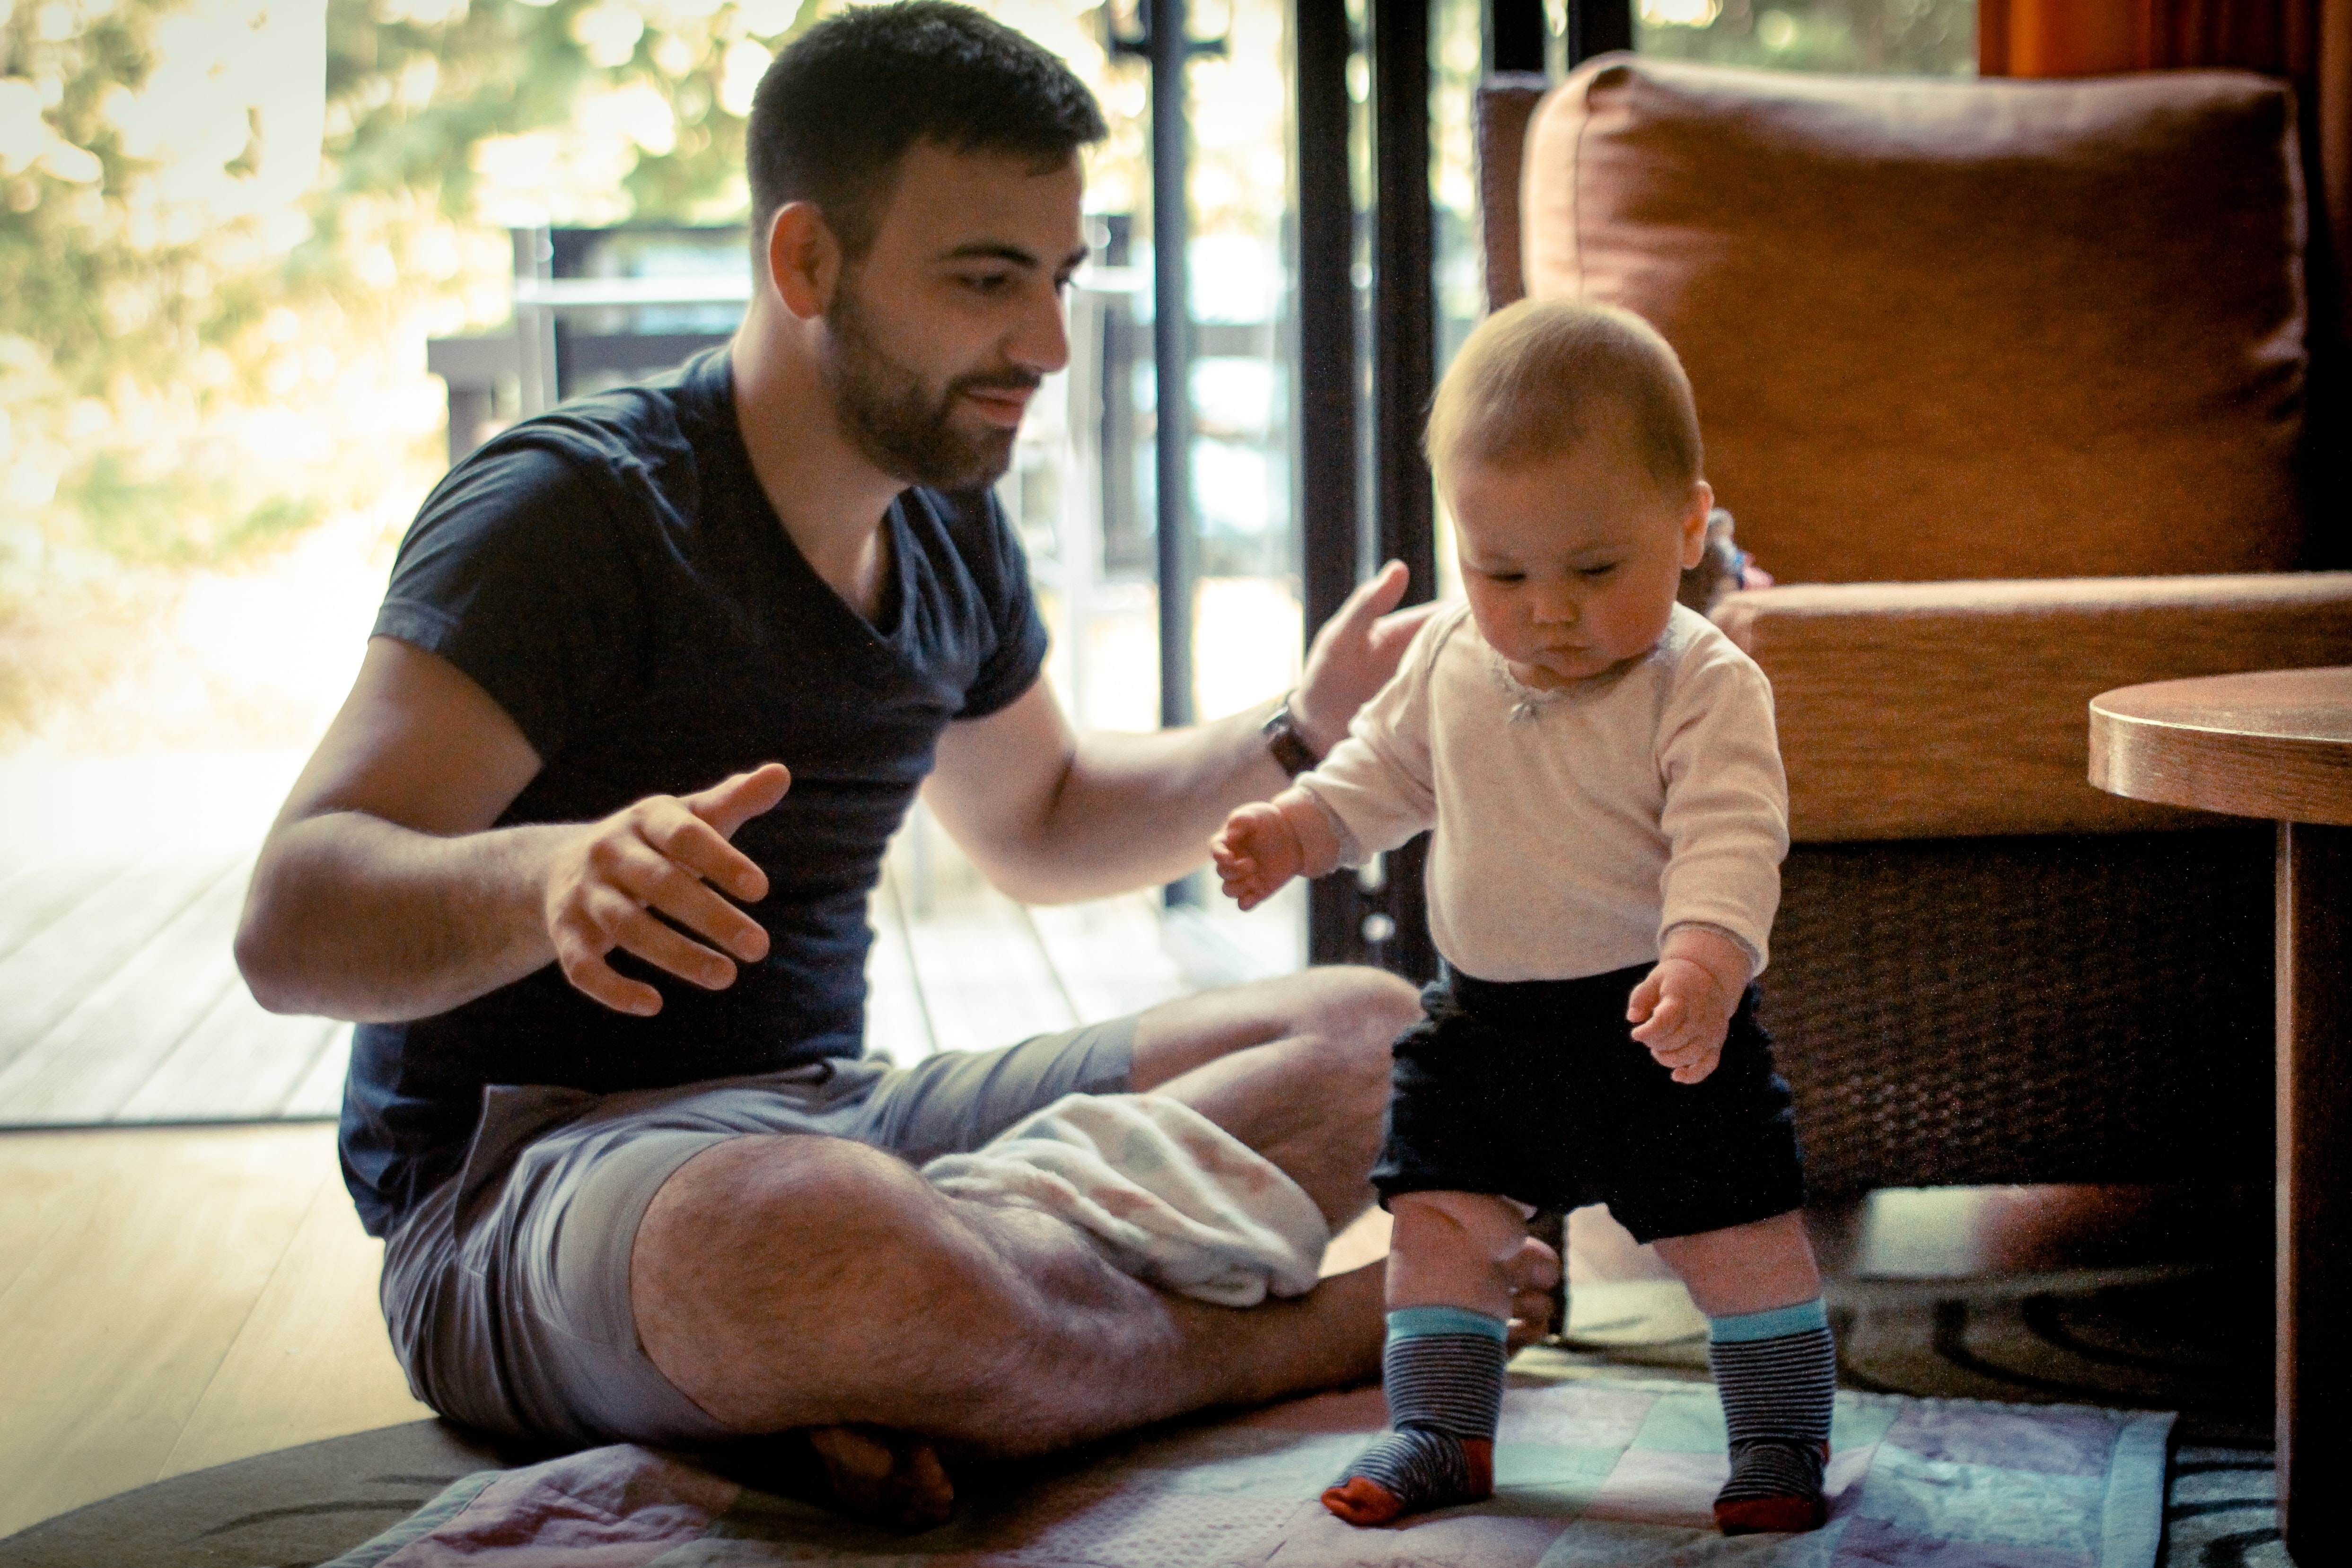 A man helping teach his 1 year old how to walk.